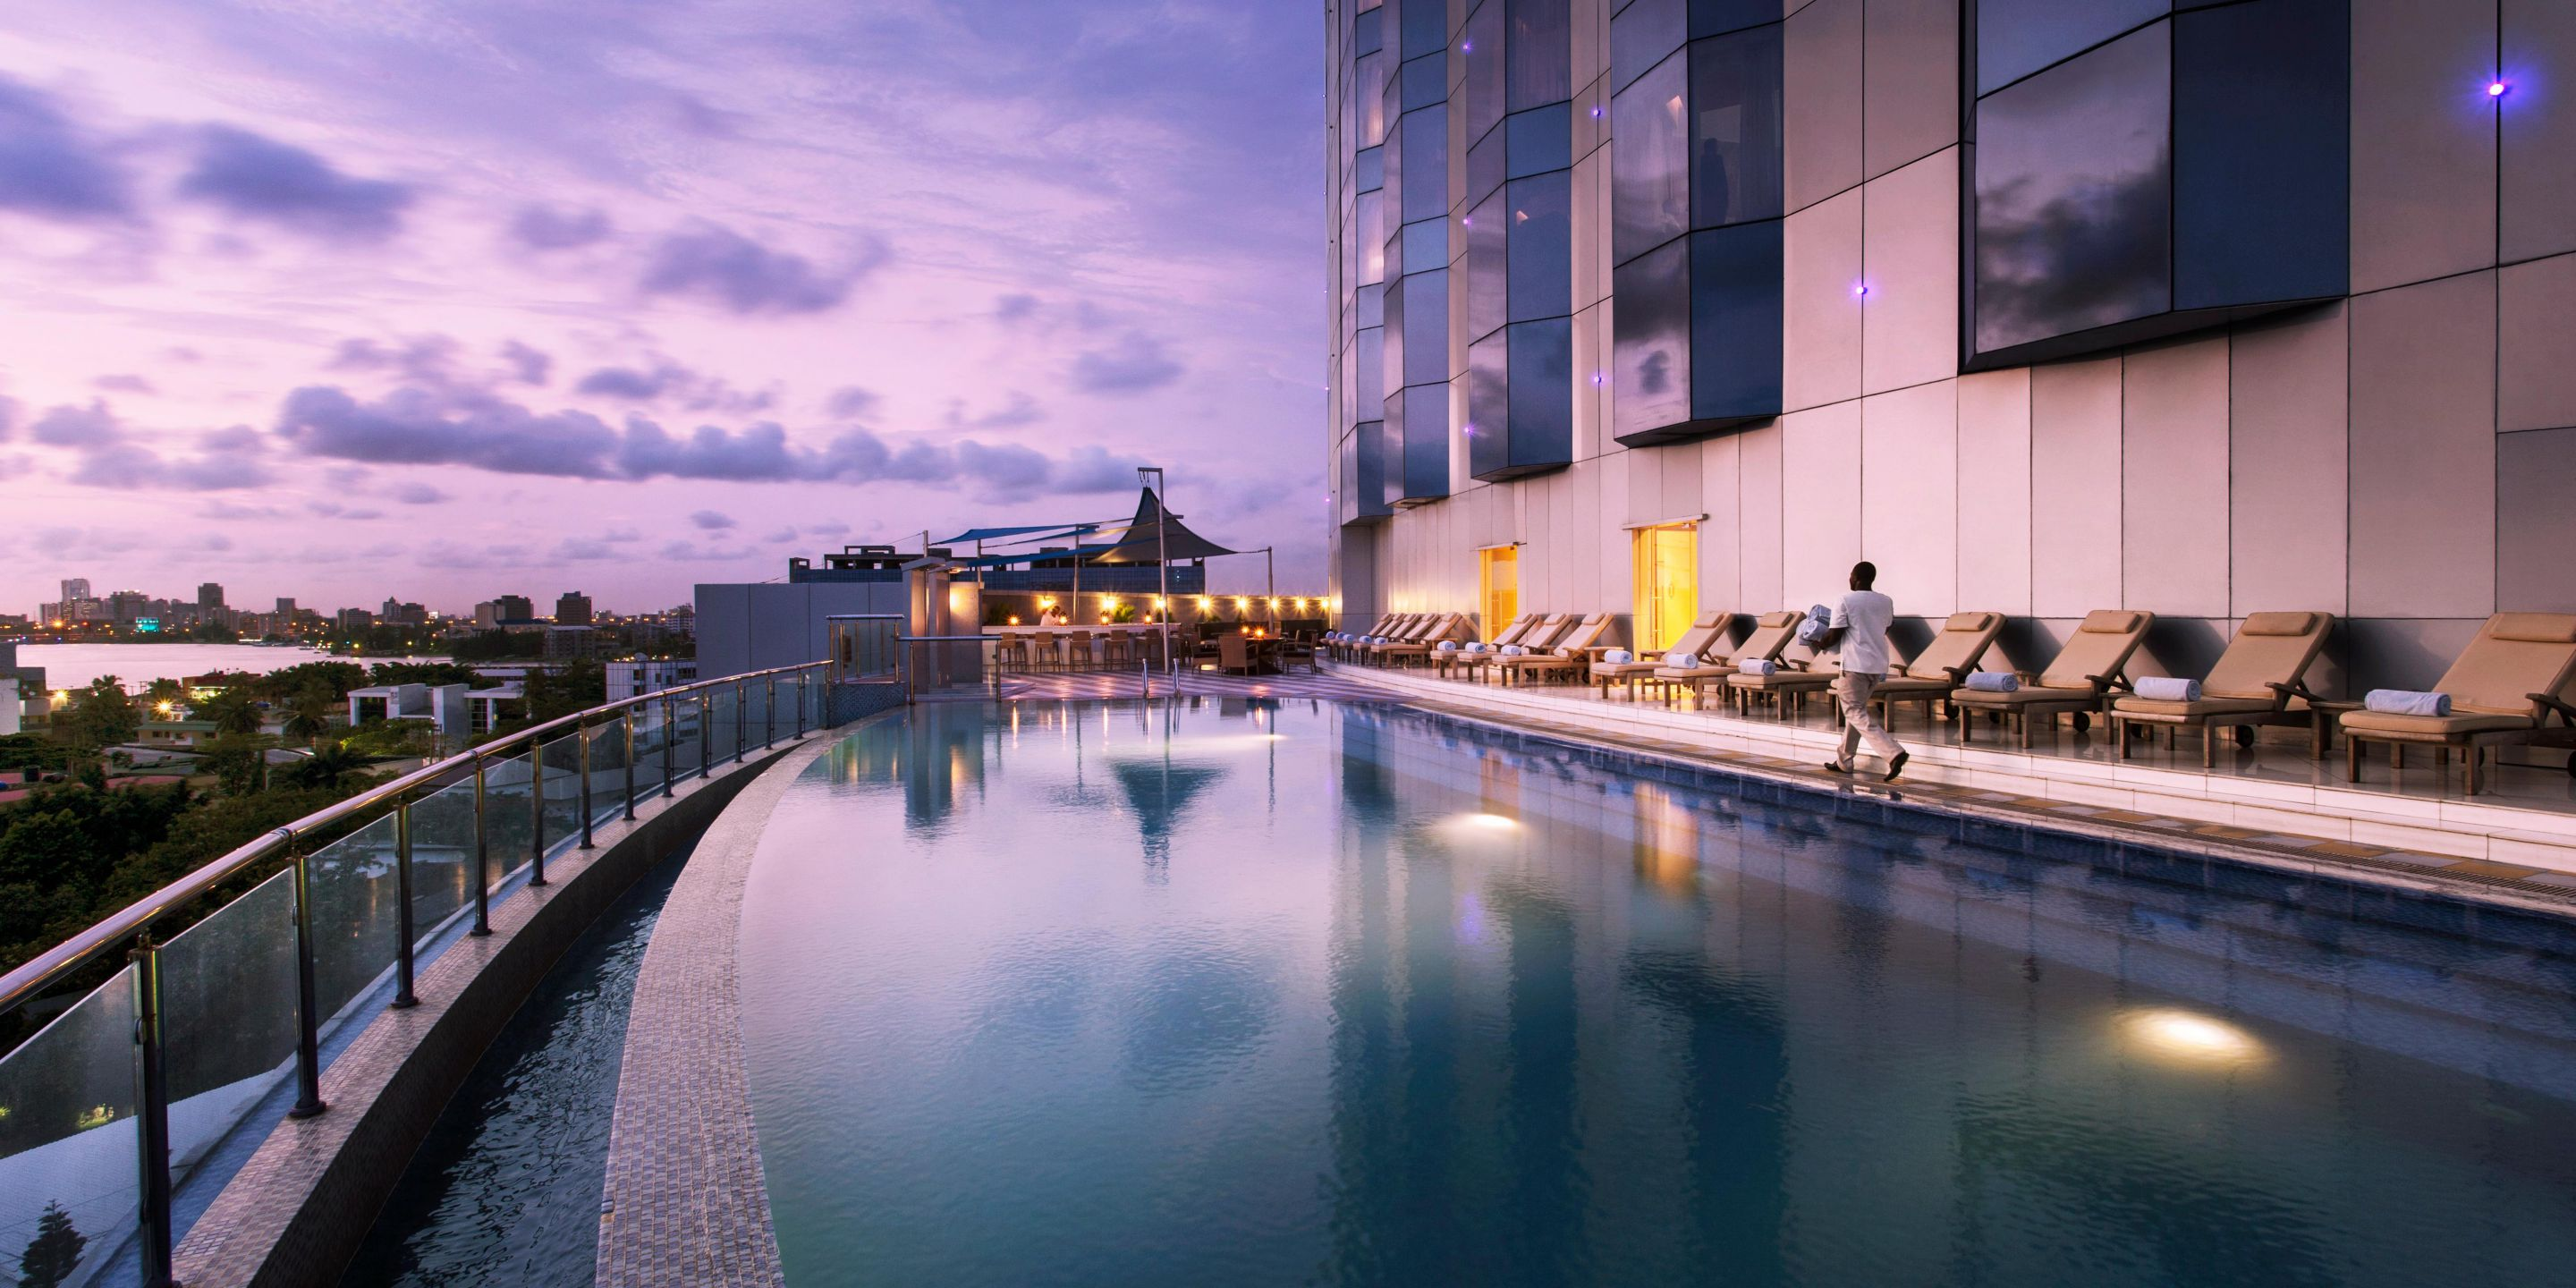 Swimming pool at the intercontinental hotel lagos image - Swimming pool industry statistics ...